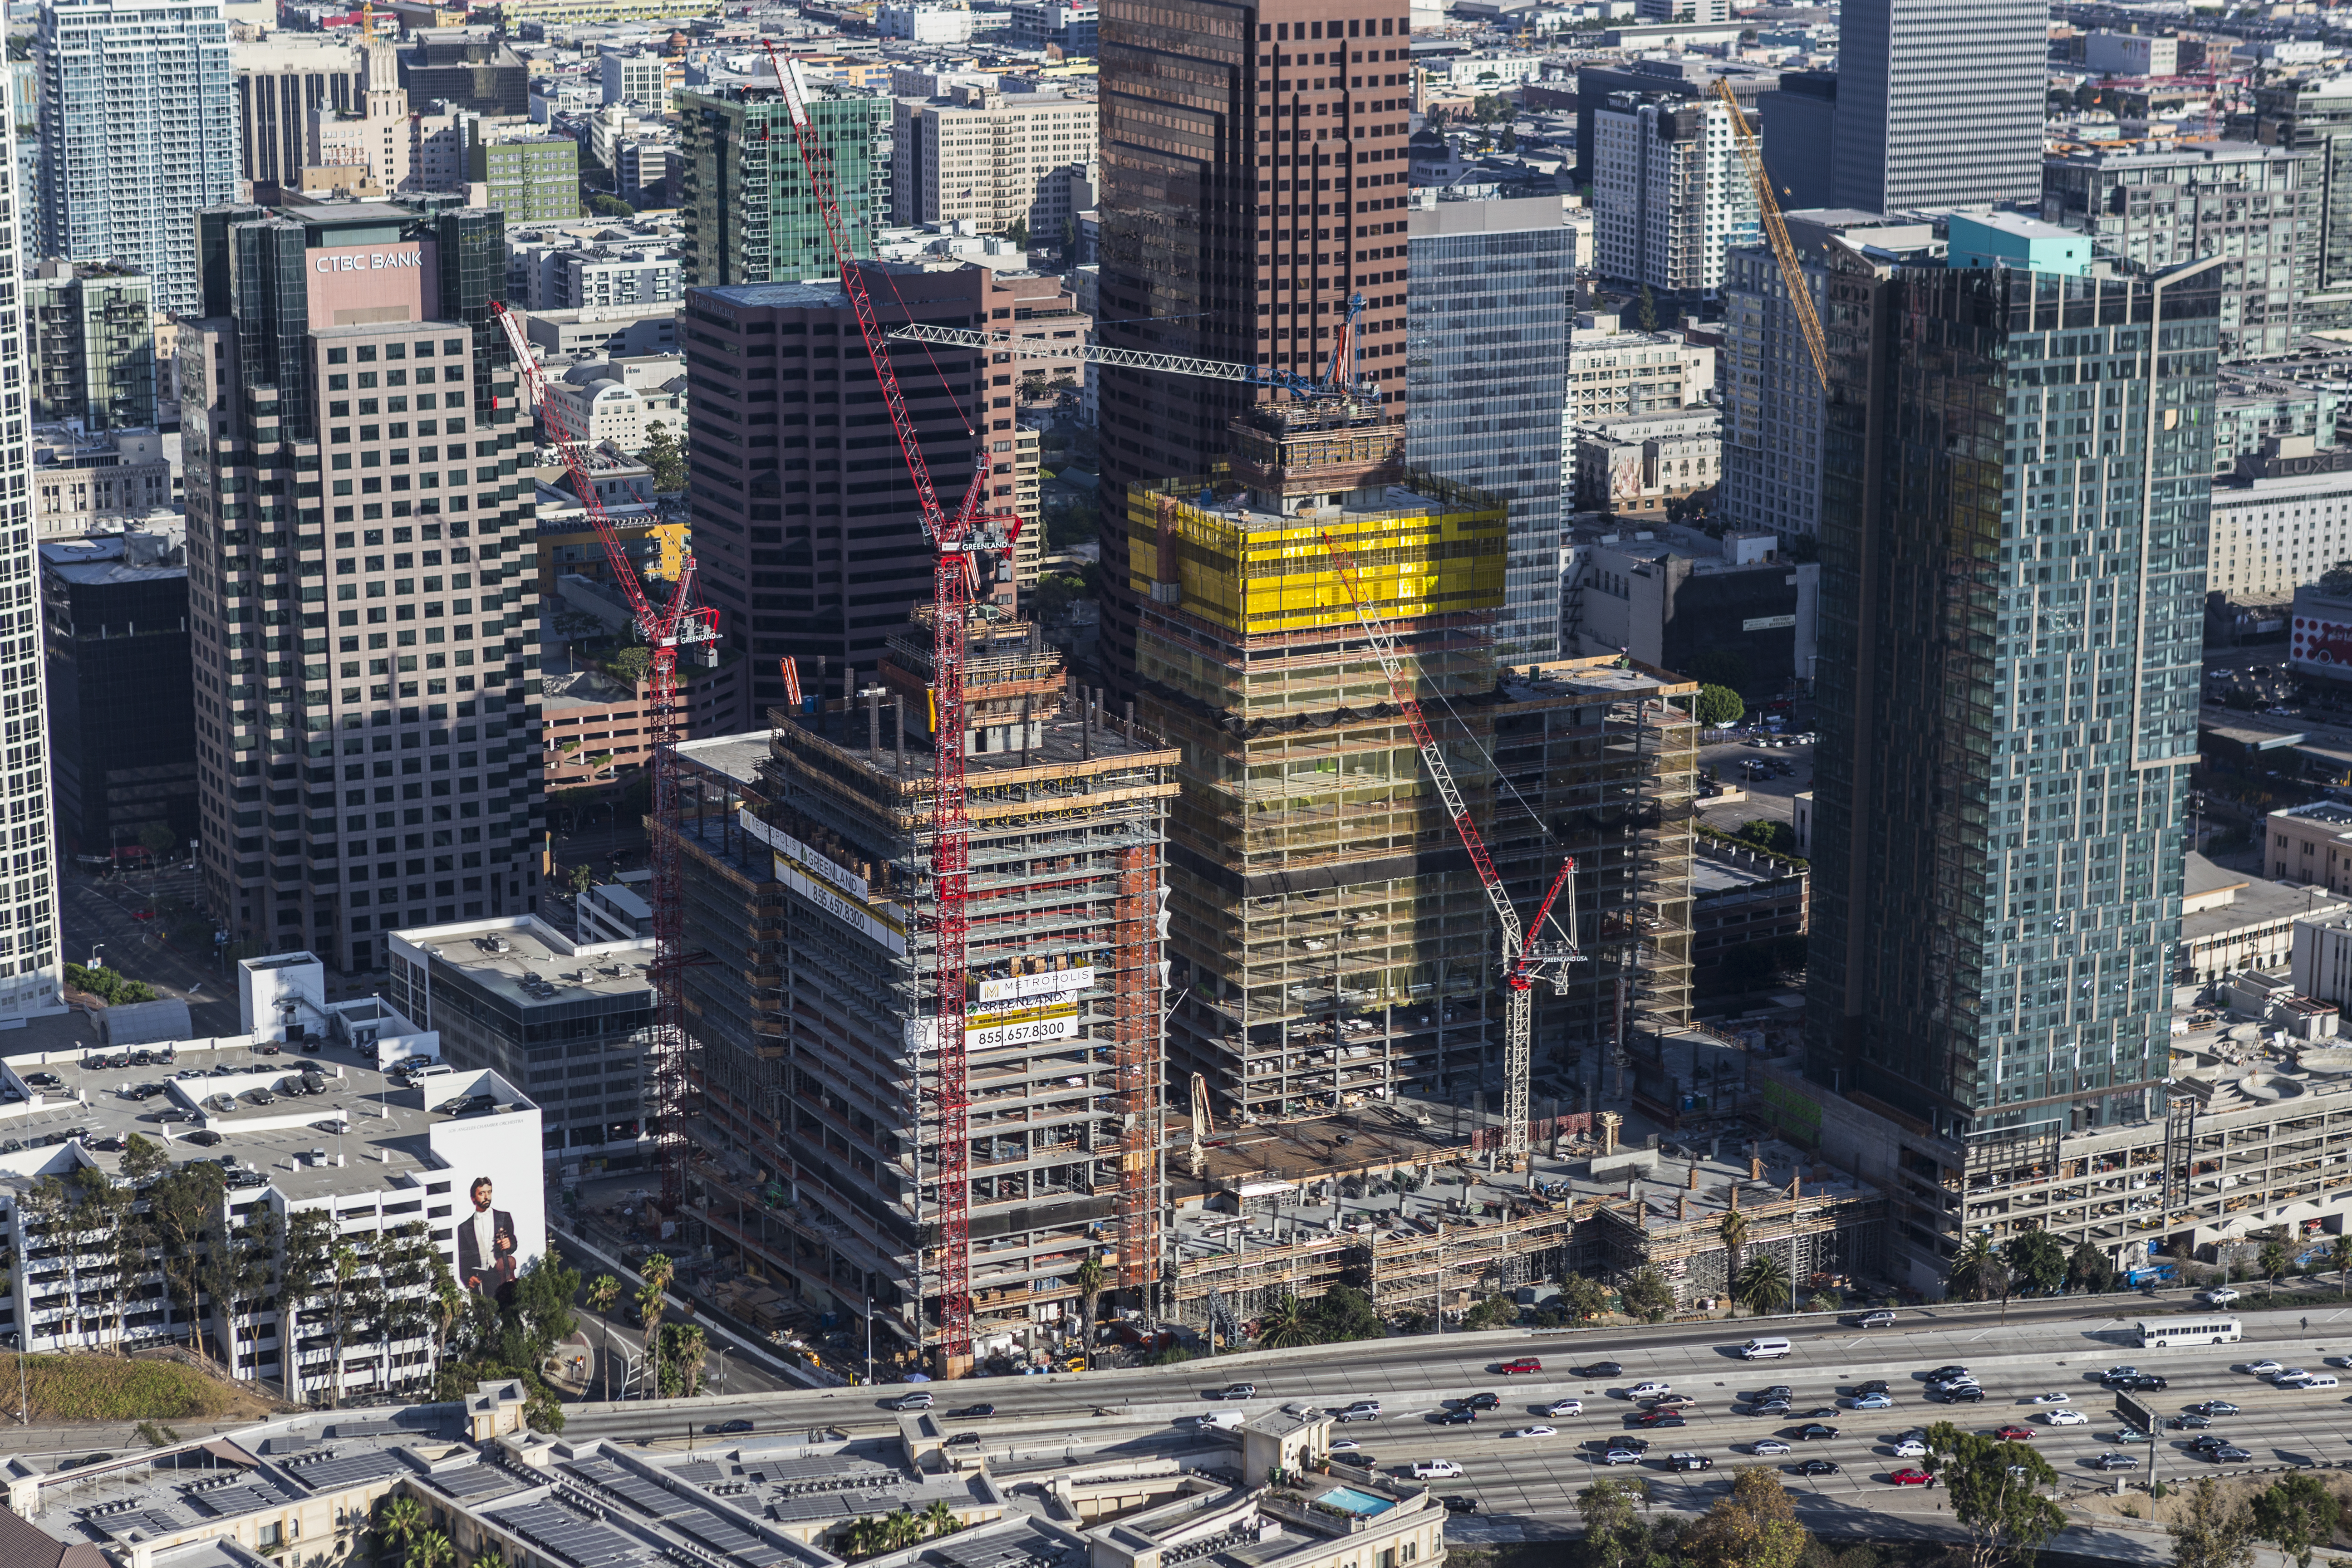 Aerial view of Metropolis construction